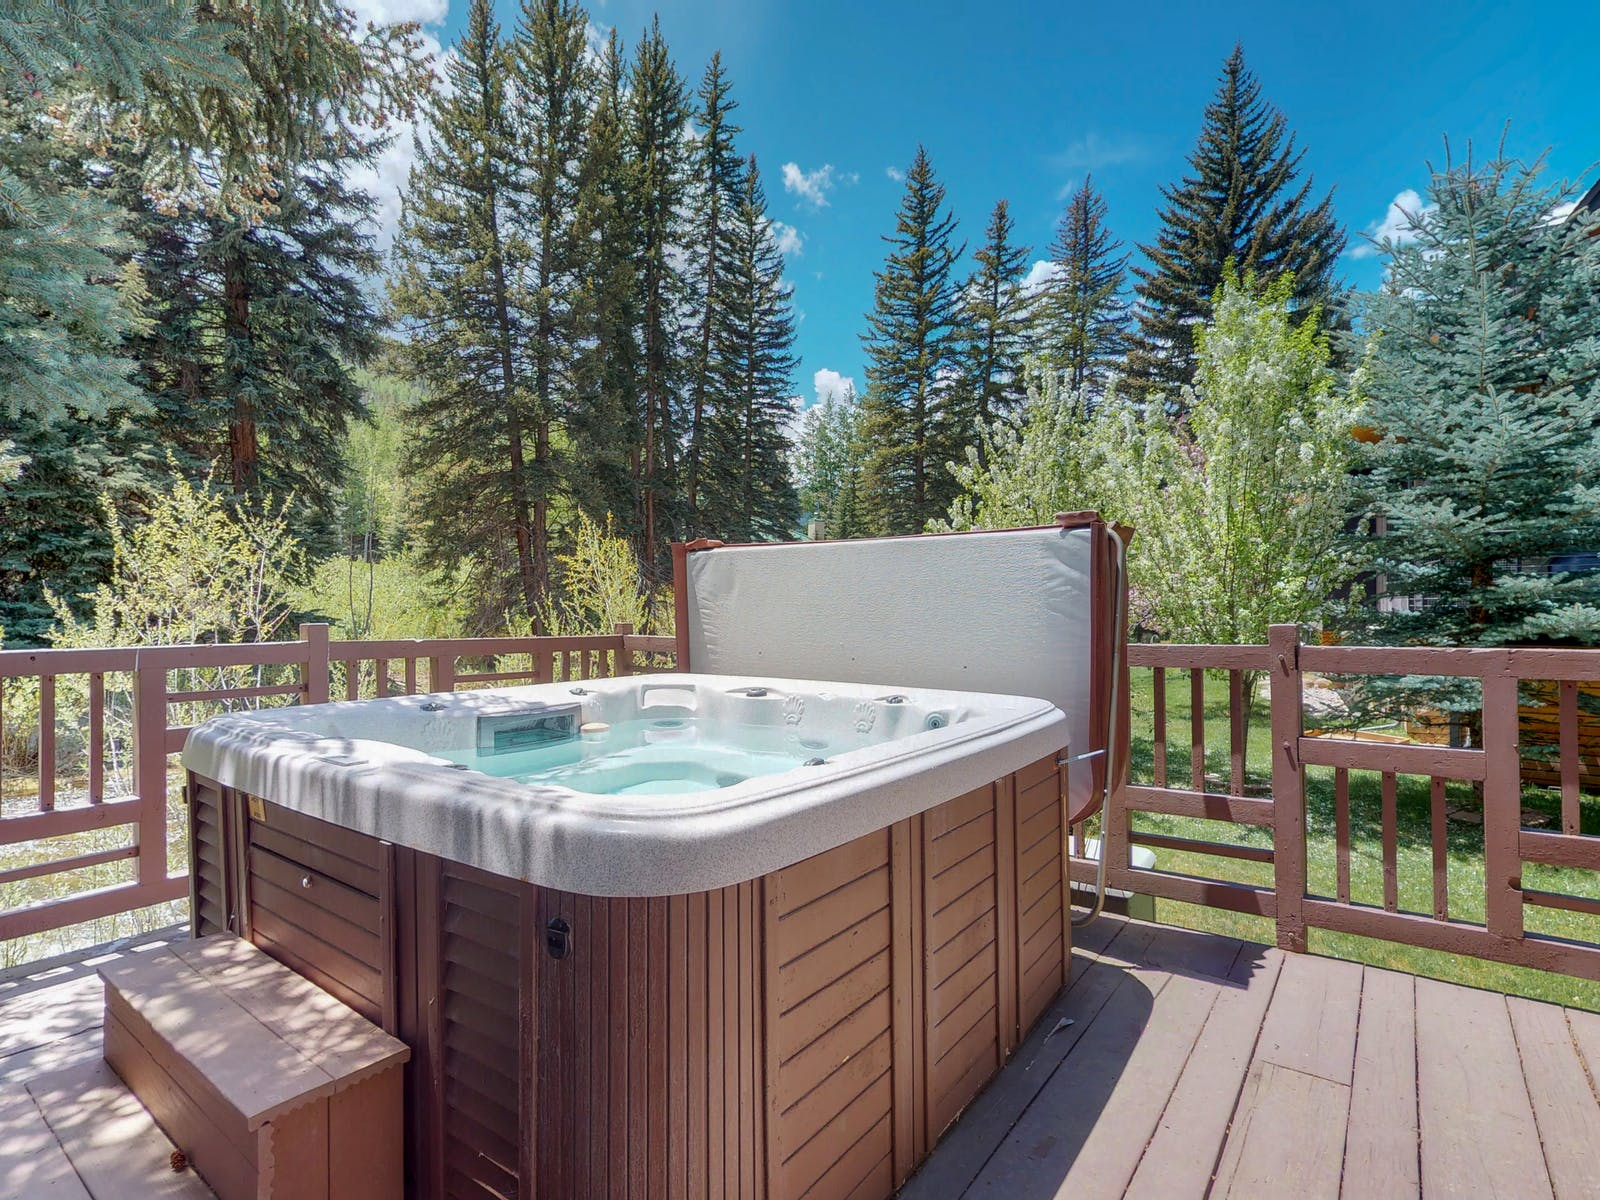 Terrific 8 Breathtaking Colorado Vacation Cabin Rentals With Hot Tubs Download Free Architecture Designs Grimeyleaguecom